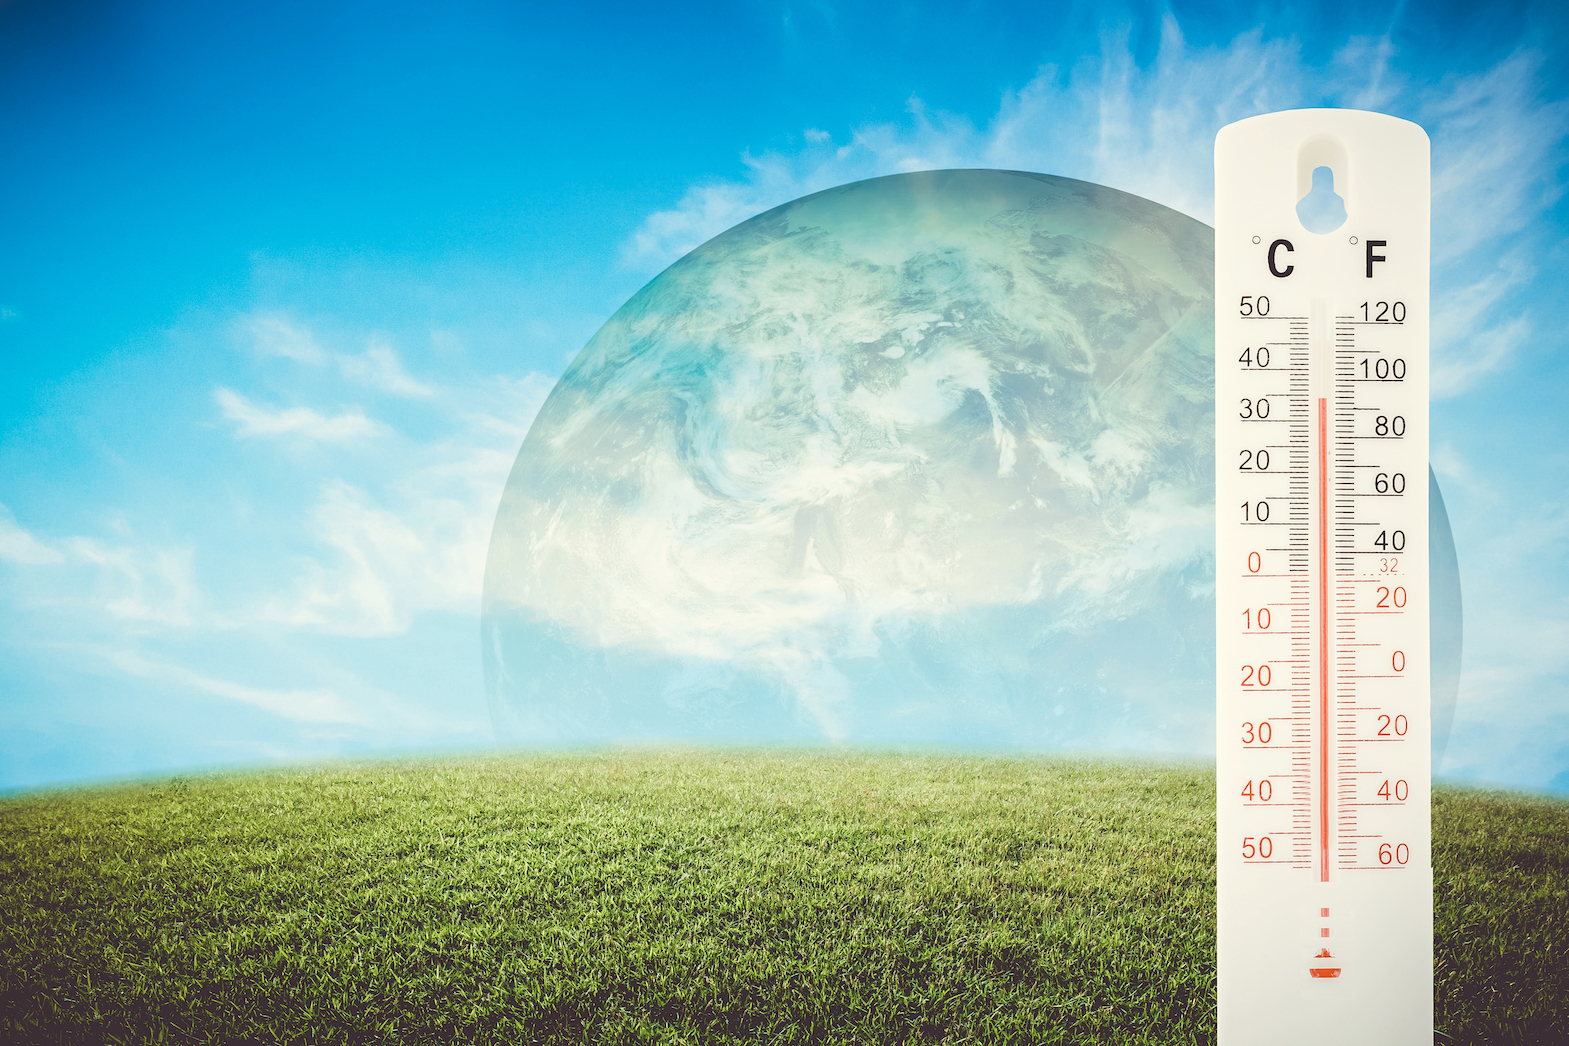 Experts are reporting that 2018 will not be as hot as its preceding years due to the La Niña weather event which brings cooler temperatures.